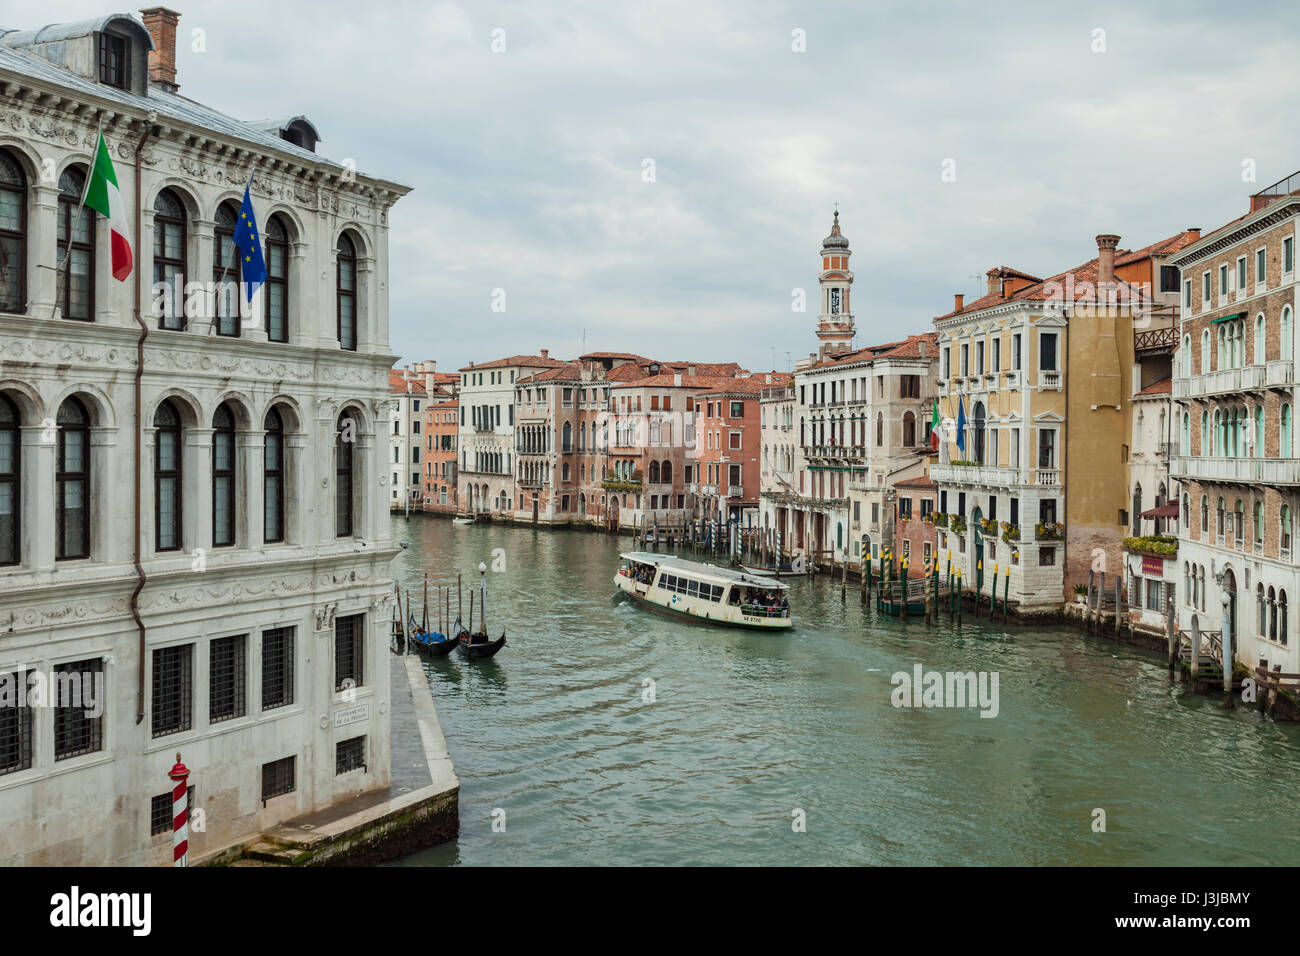 Rainy day on Grand Canal in Venice. - Stock Image